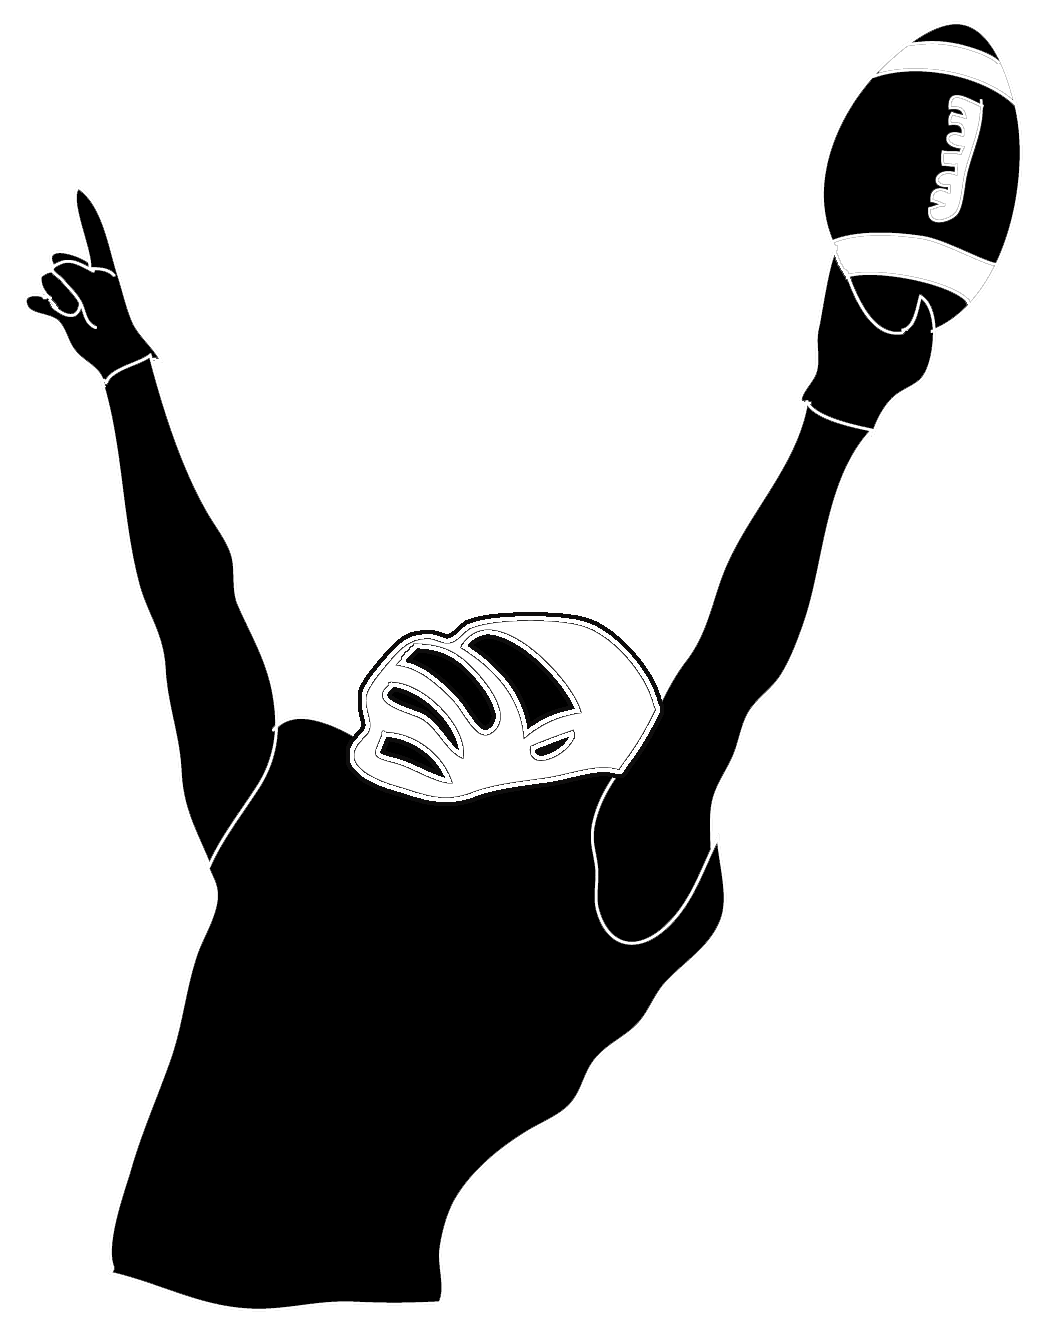 clipart football player free.